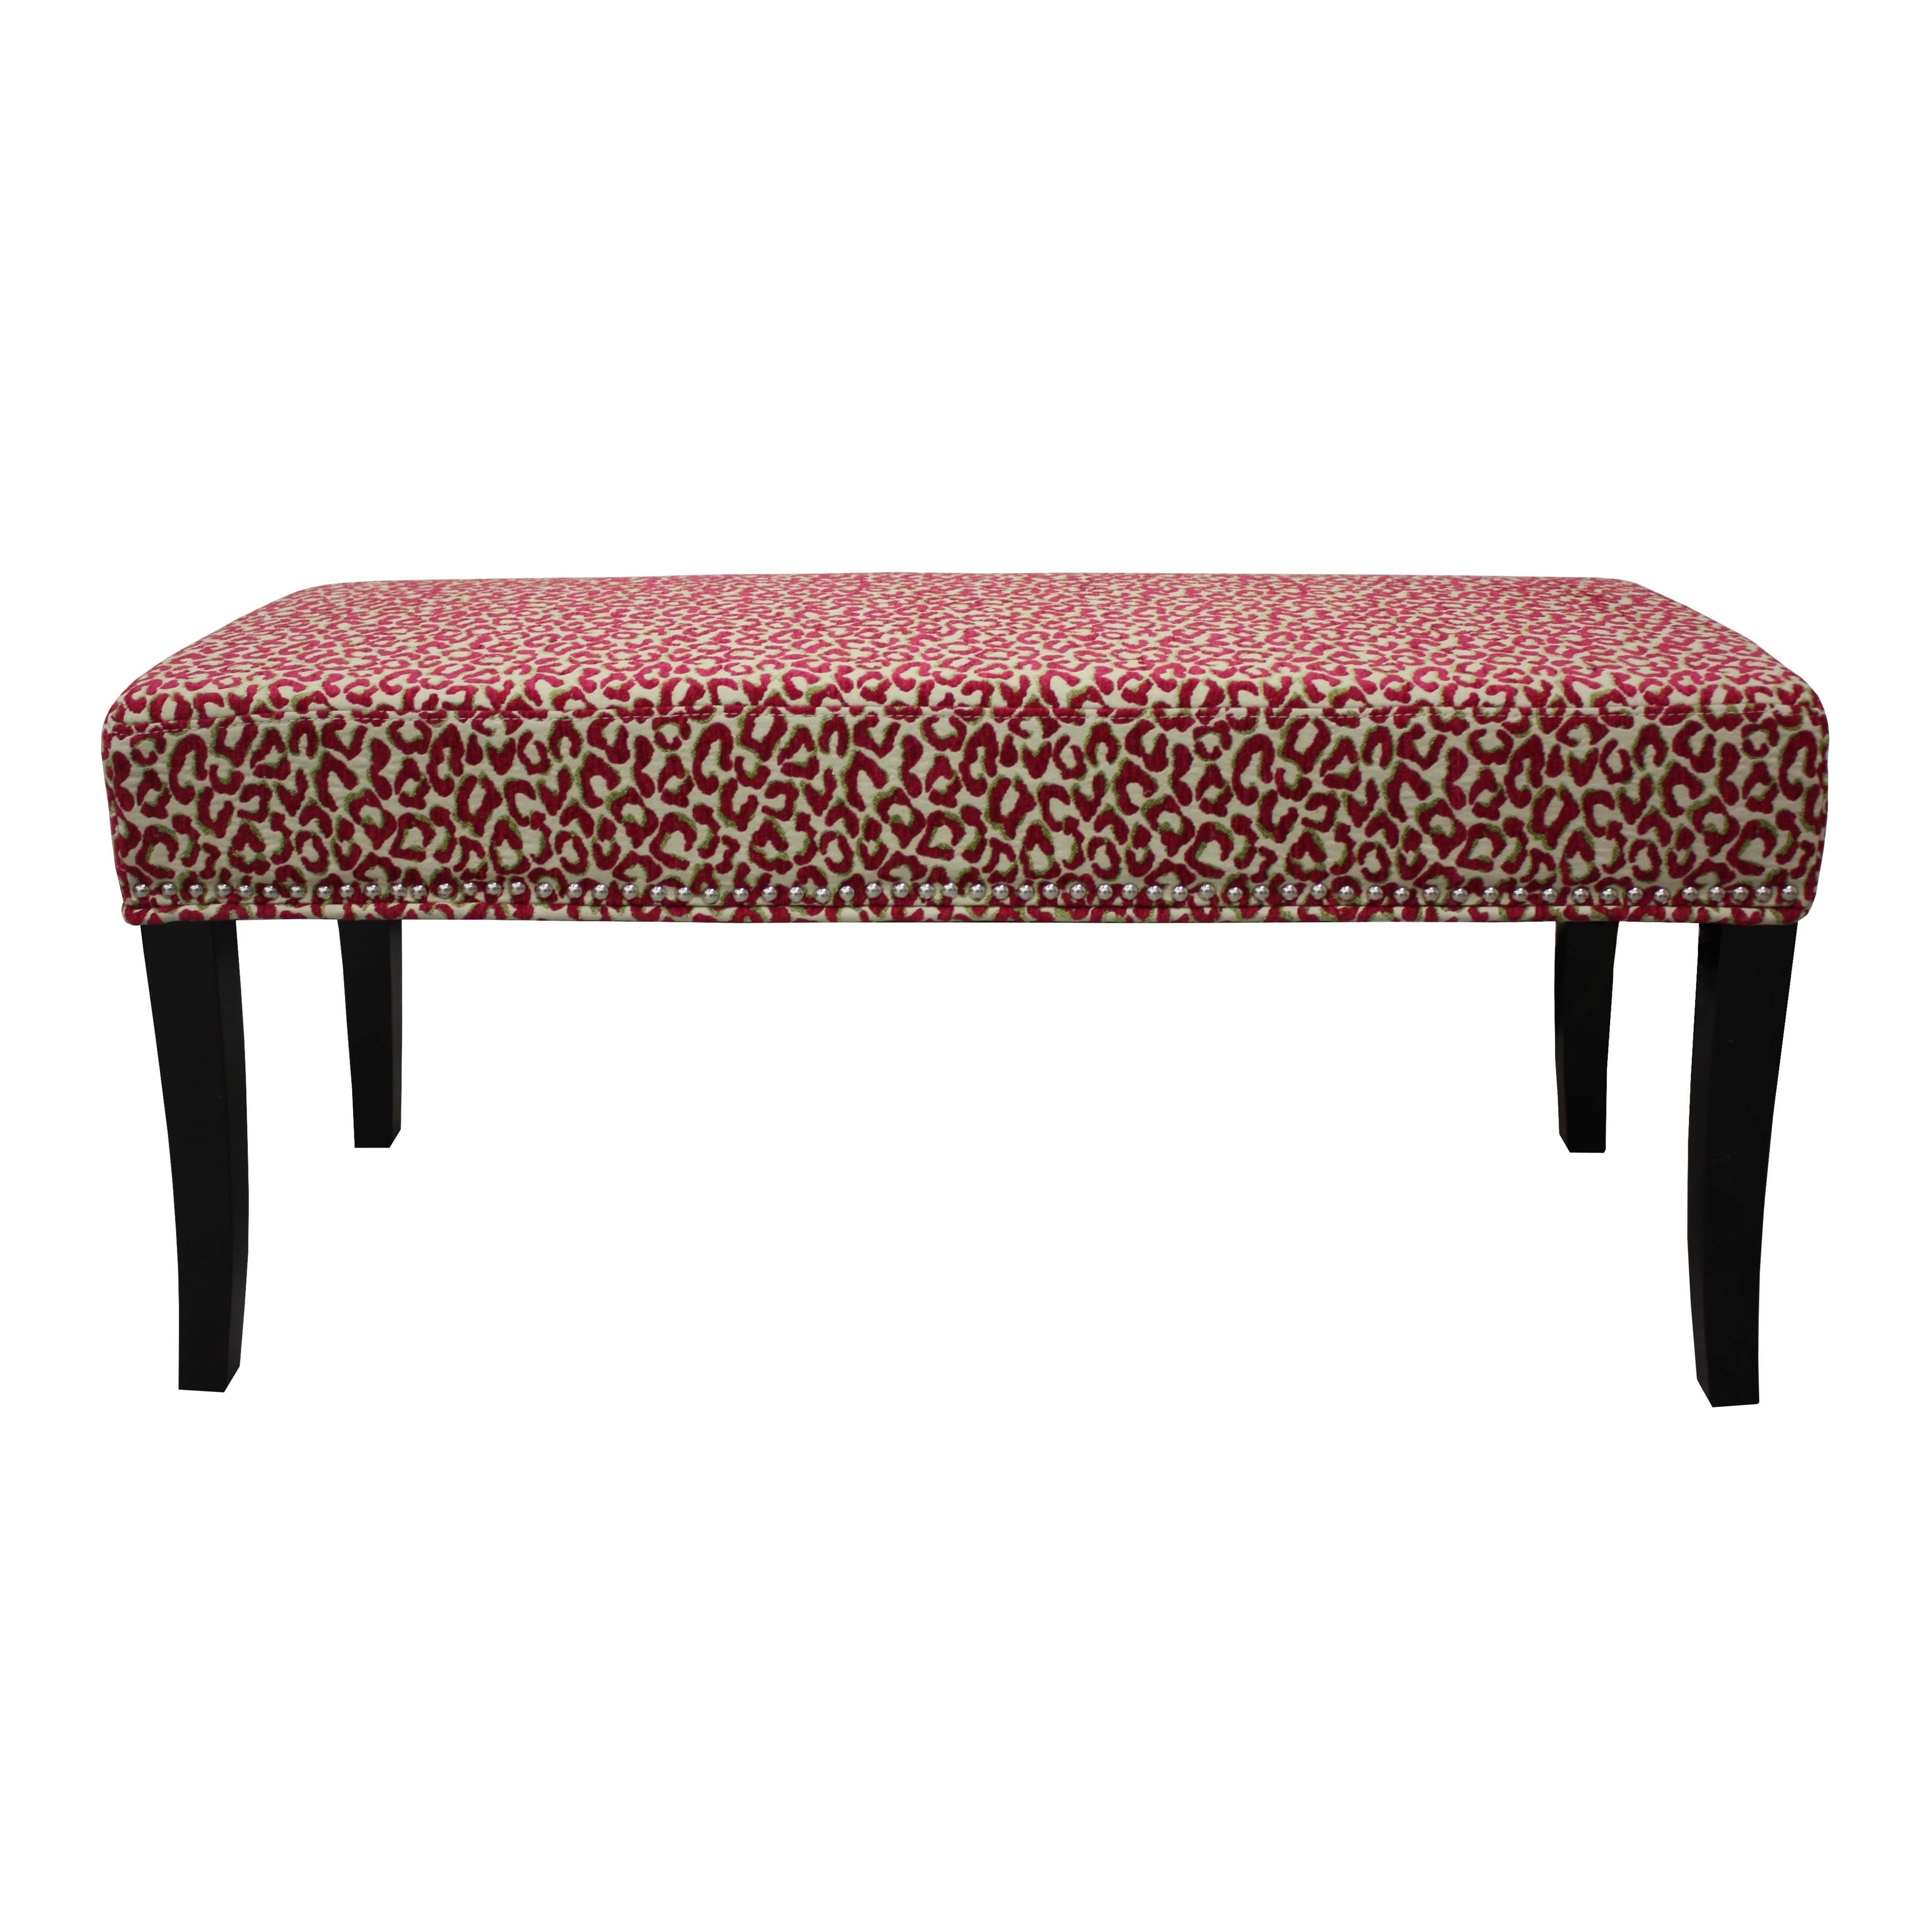 Hd Couture Pink Cheetah Chenille 40 Inch Bench Walmartcom